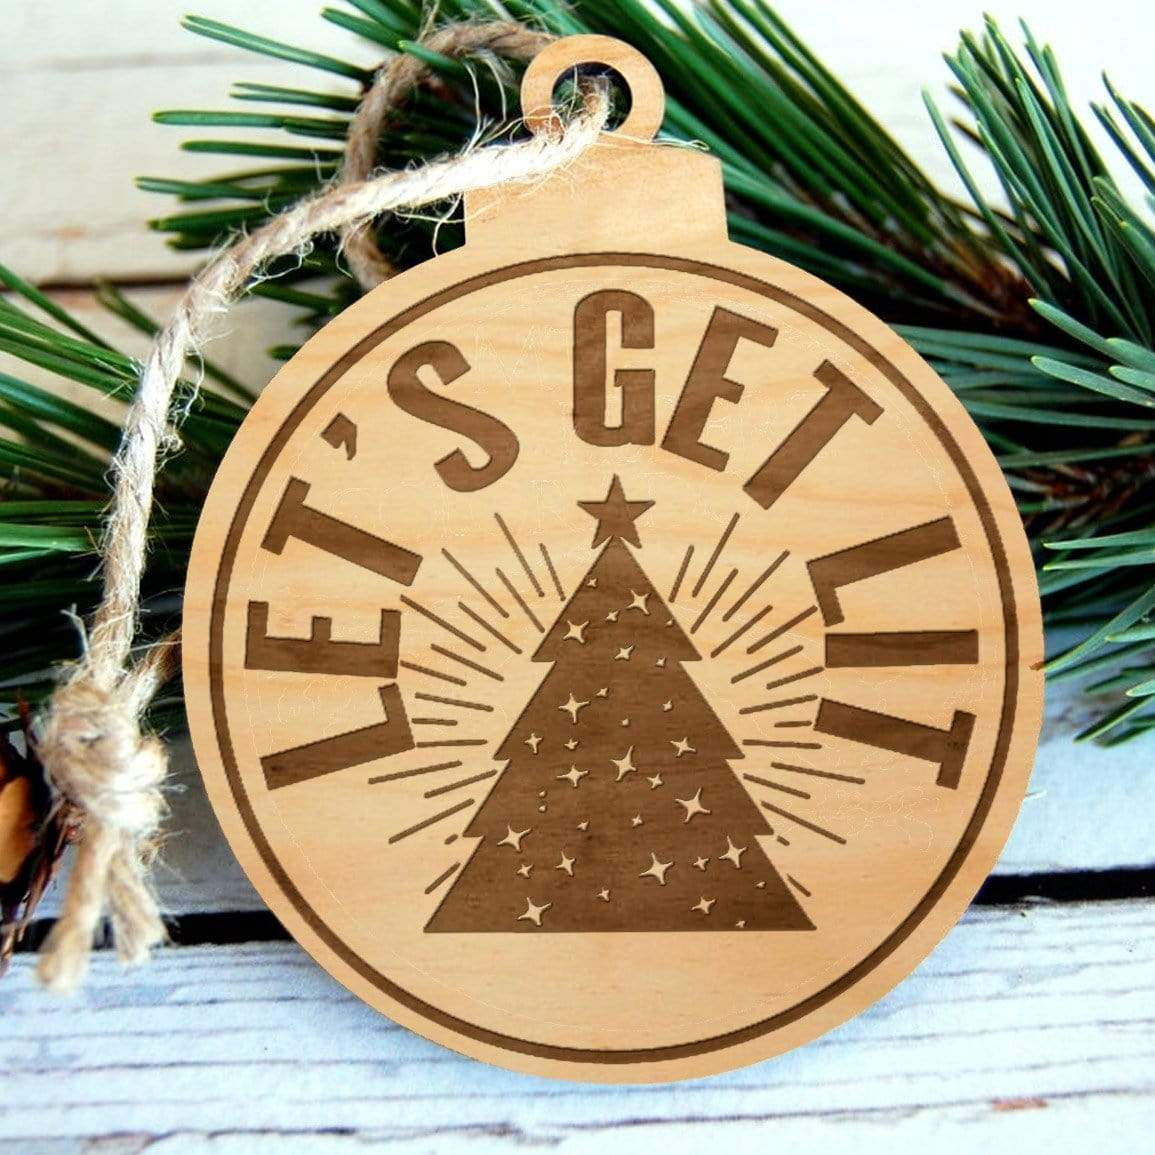 Let's Get Lit Laser Engraved Wooden Christmas Ornament